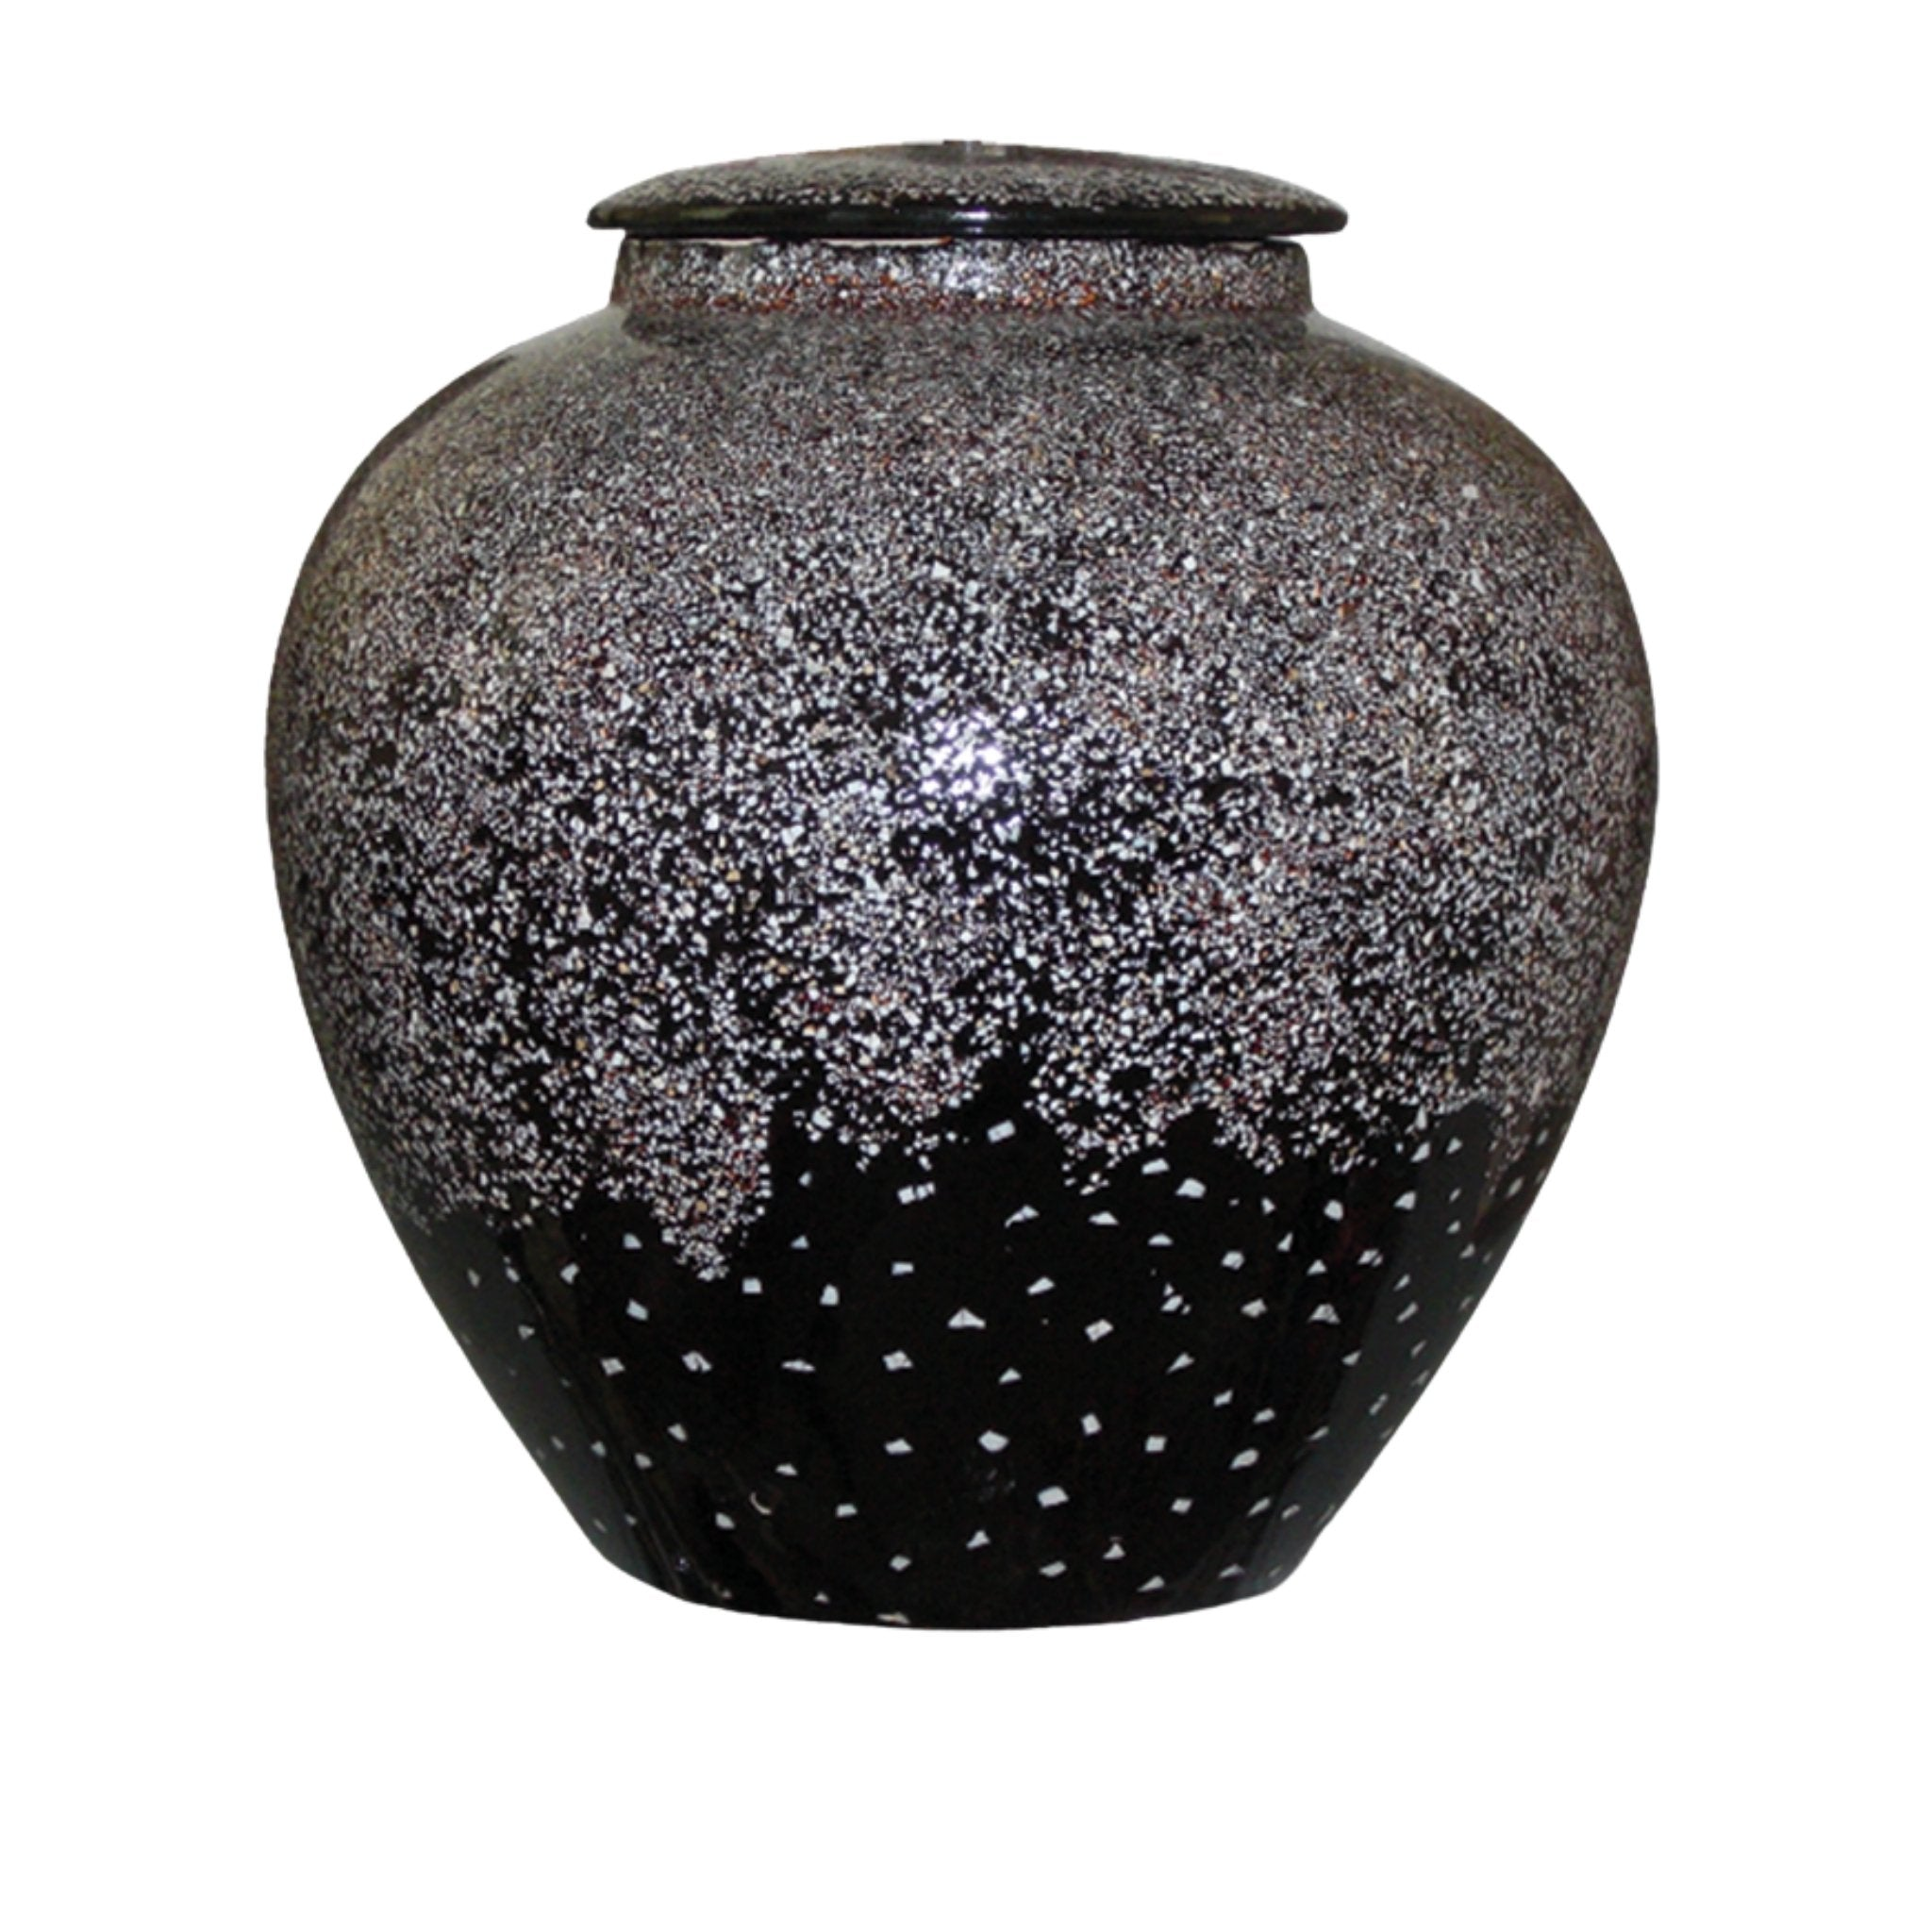 Allerton Adult Cremation Ashes Urn Snow